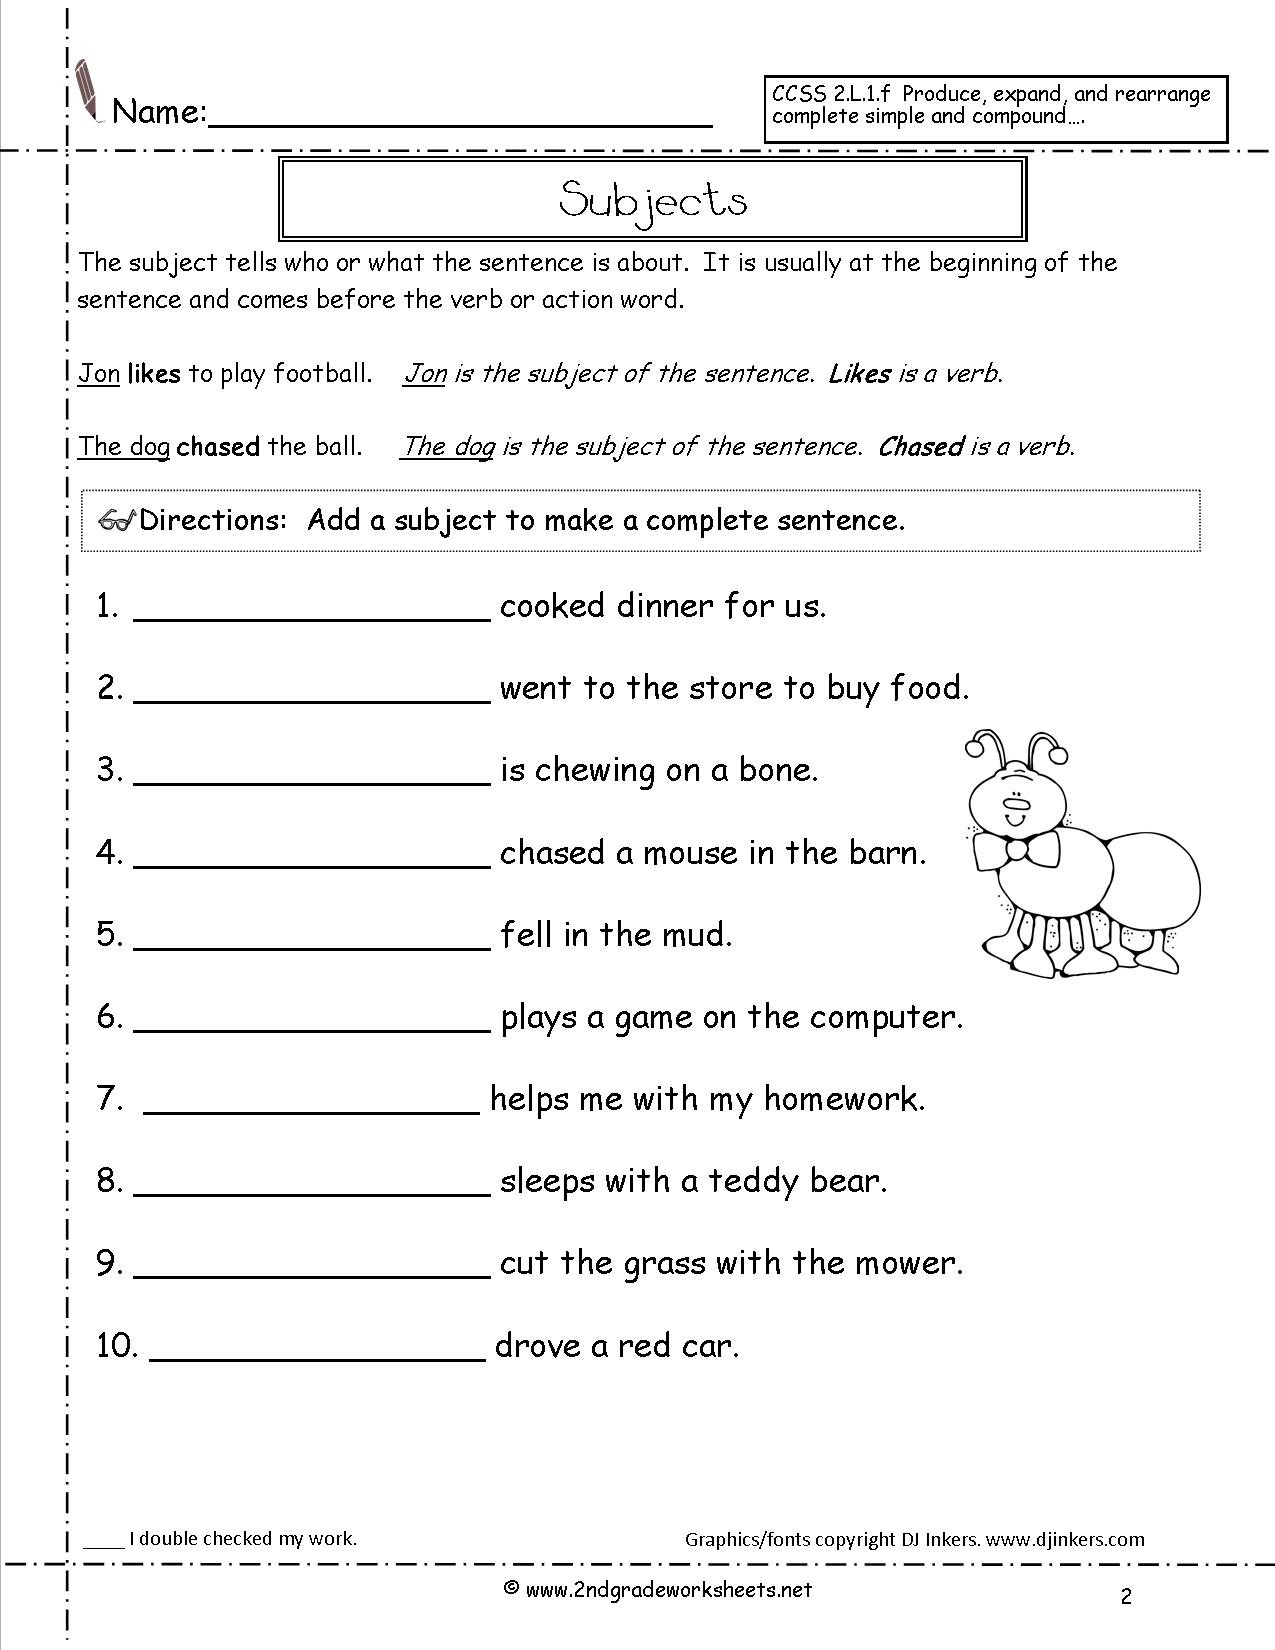 4th Grade Writing Worksheets Pdf Basic Math Words Printable Cursive Worksheets 3rd Grade